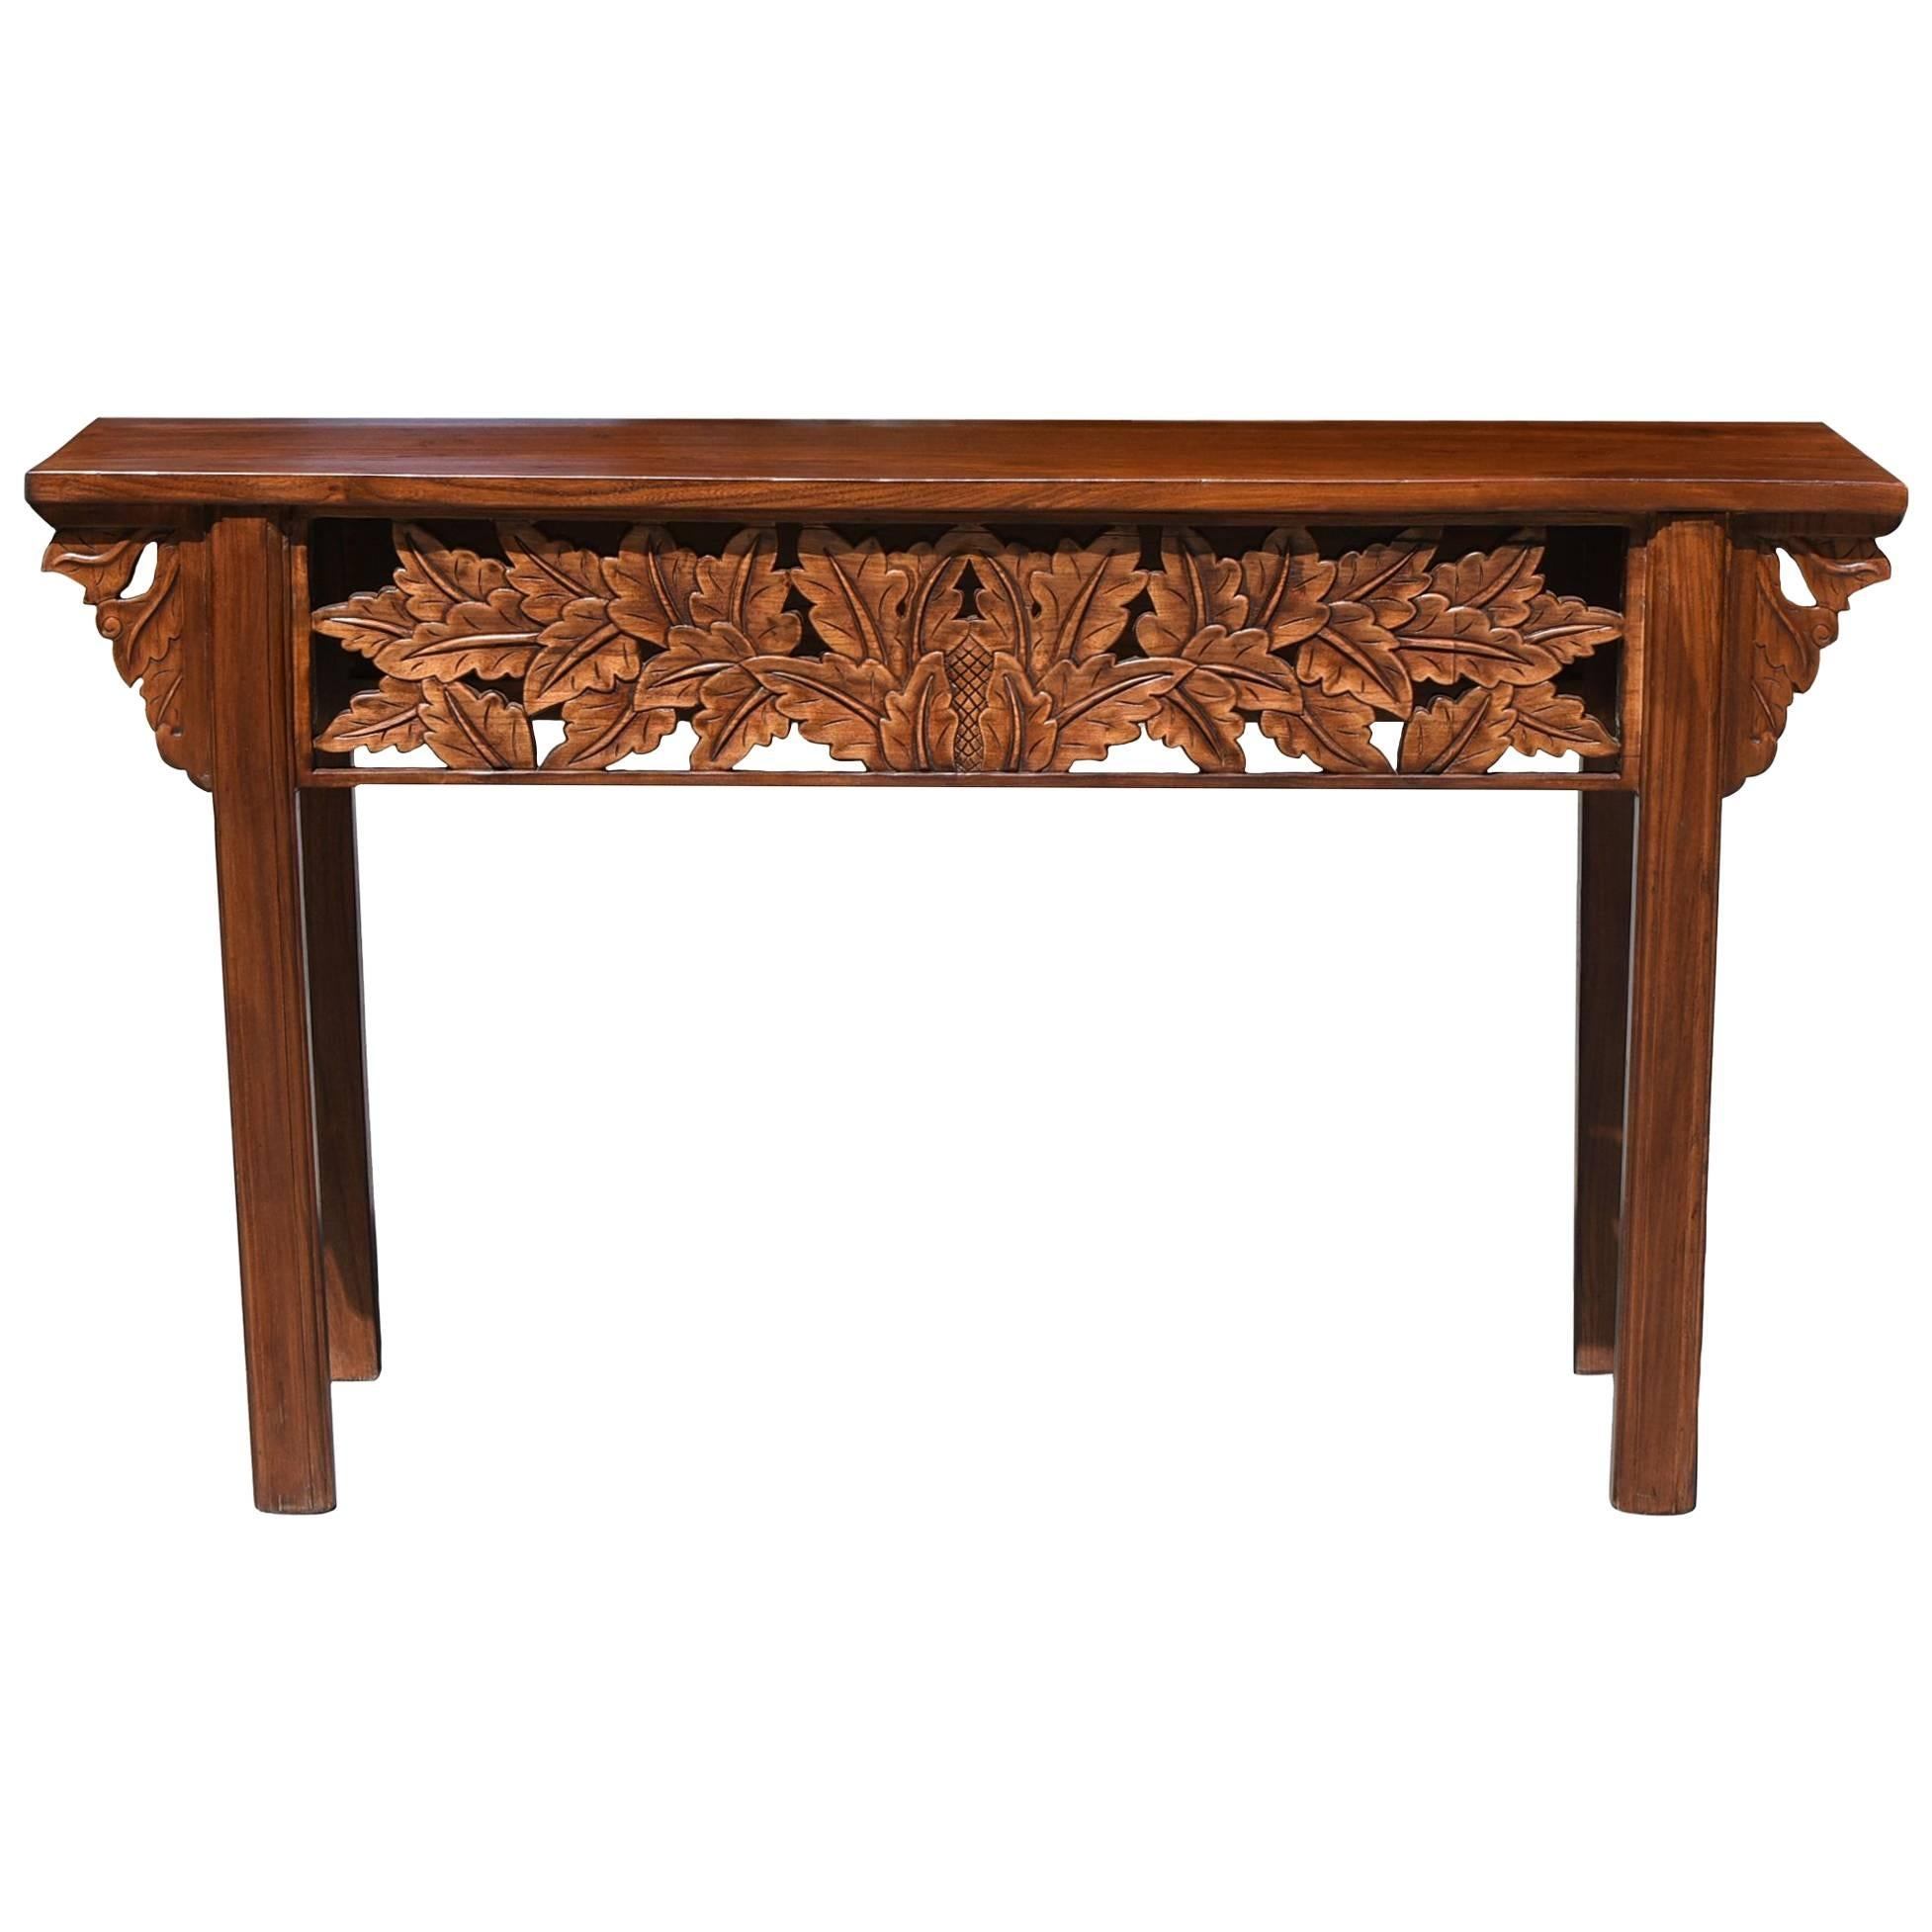 Asian Console Table with Foliage Carvings Hand Carved For Sale at